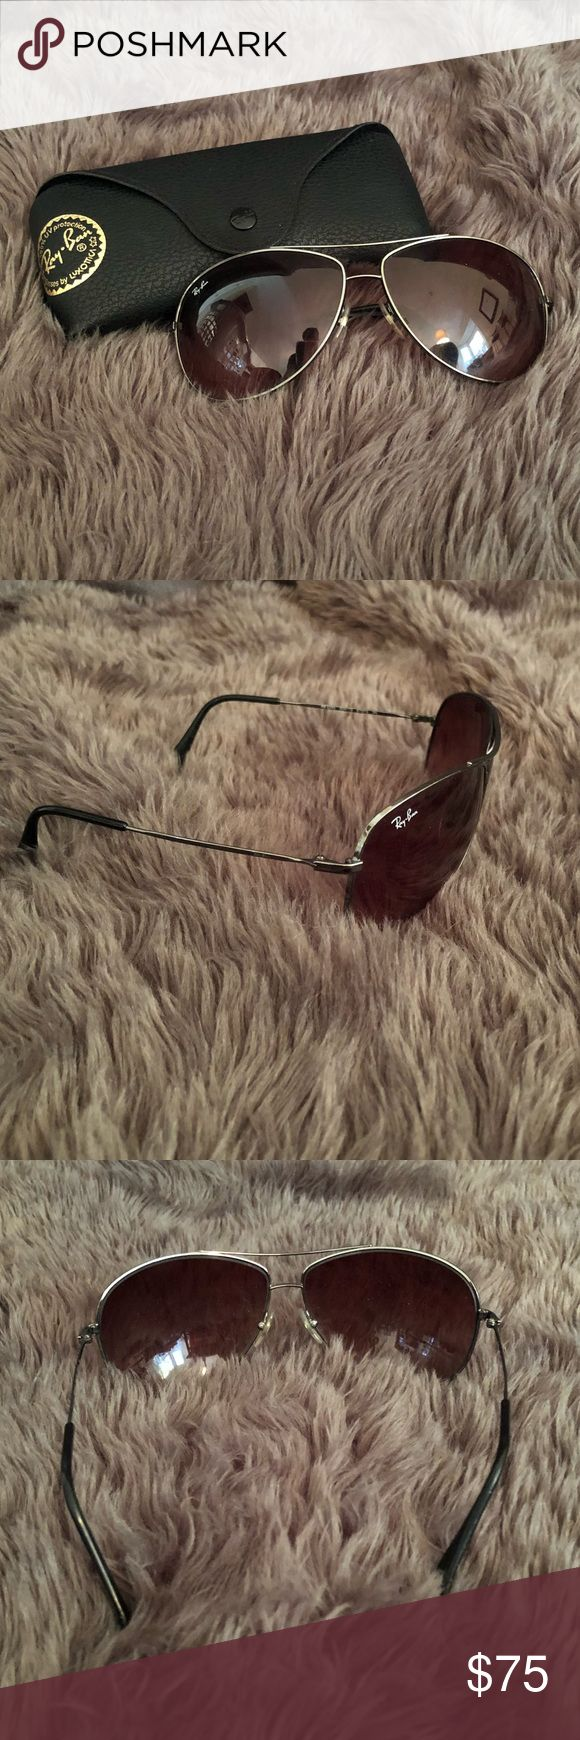 Ray Ban unisex aviator sunglasses Ray Ban aviator sunglasses. Unisex frame. Gradient lenses. No scratches. Nose pieces are in tact. Case and polishing cloth included. Ray-Ban Accessories Sunglasses